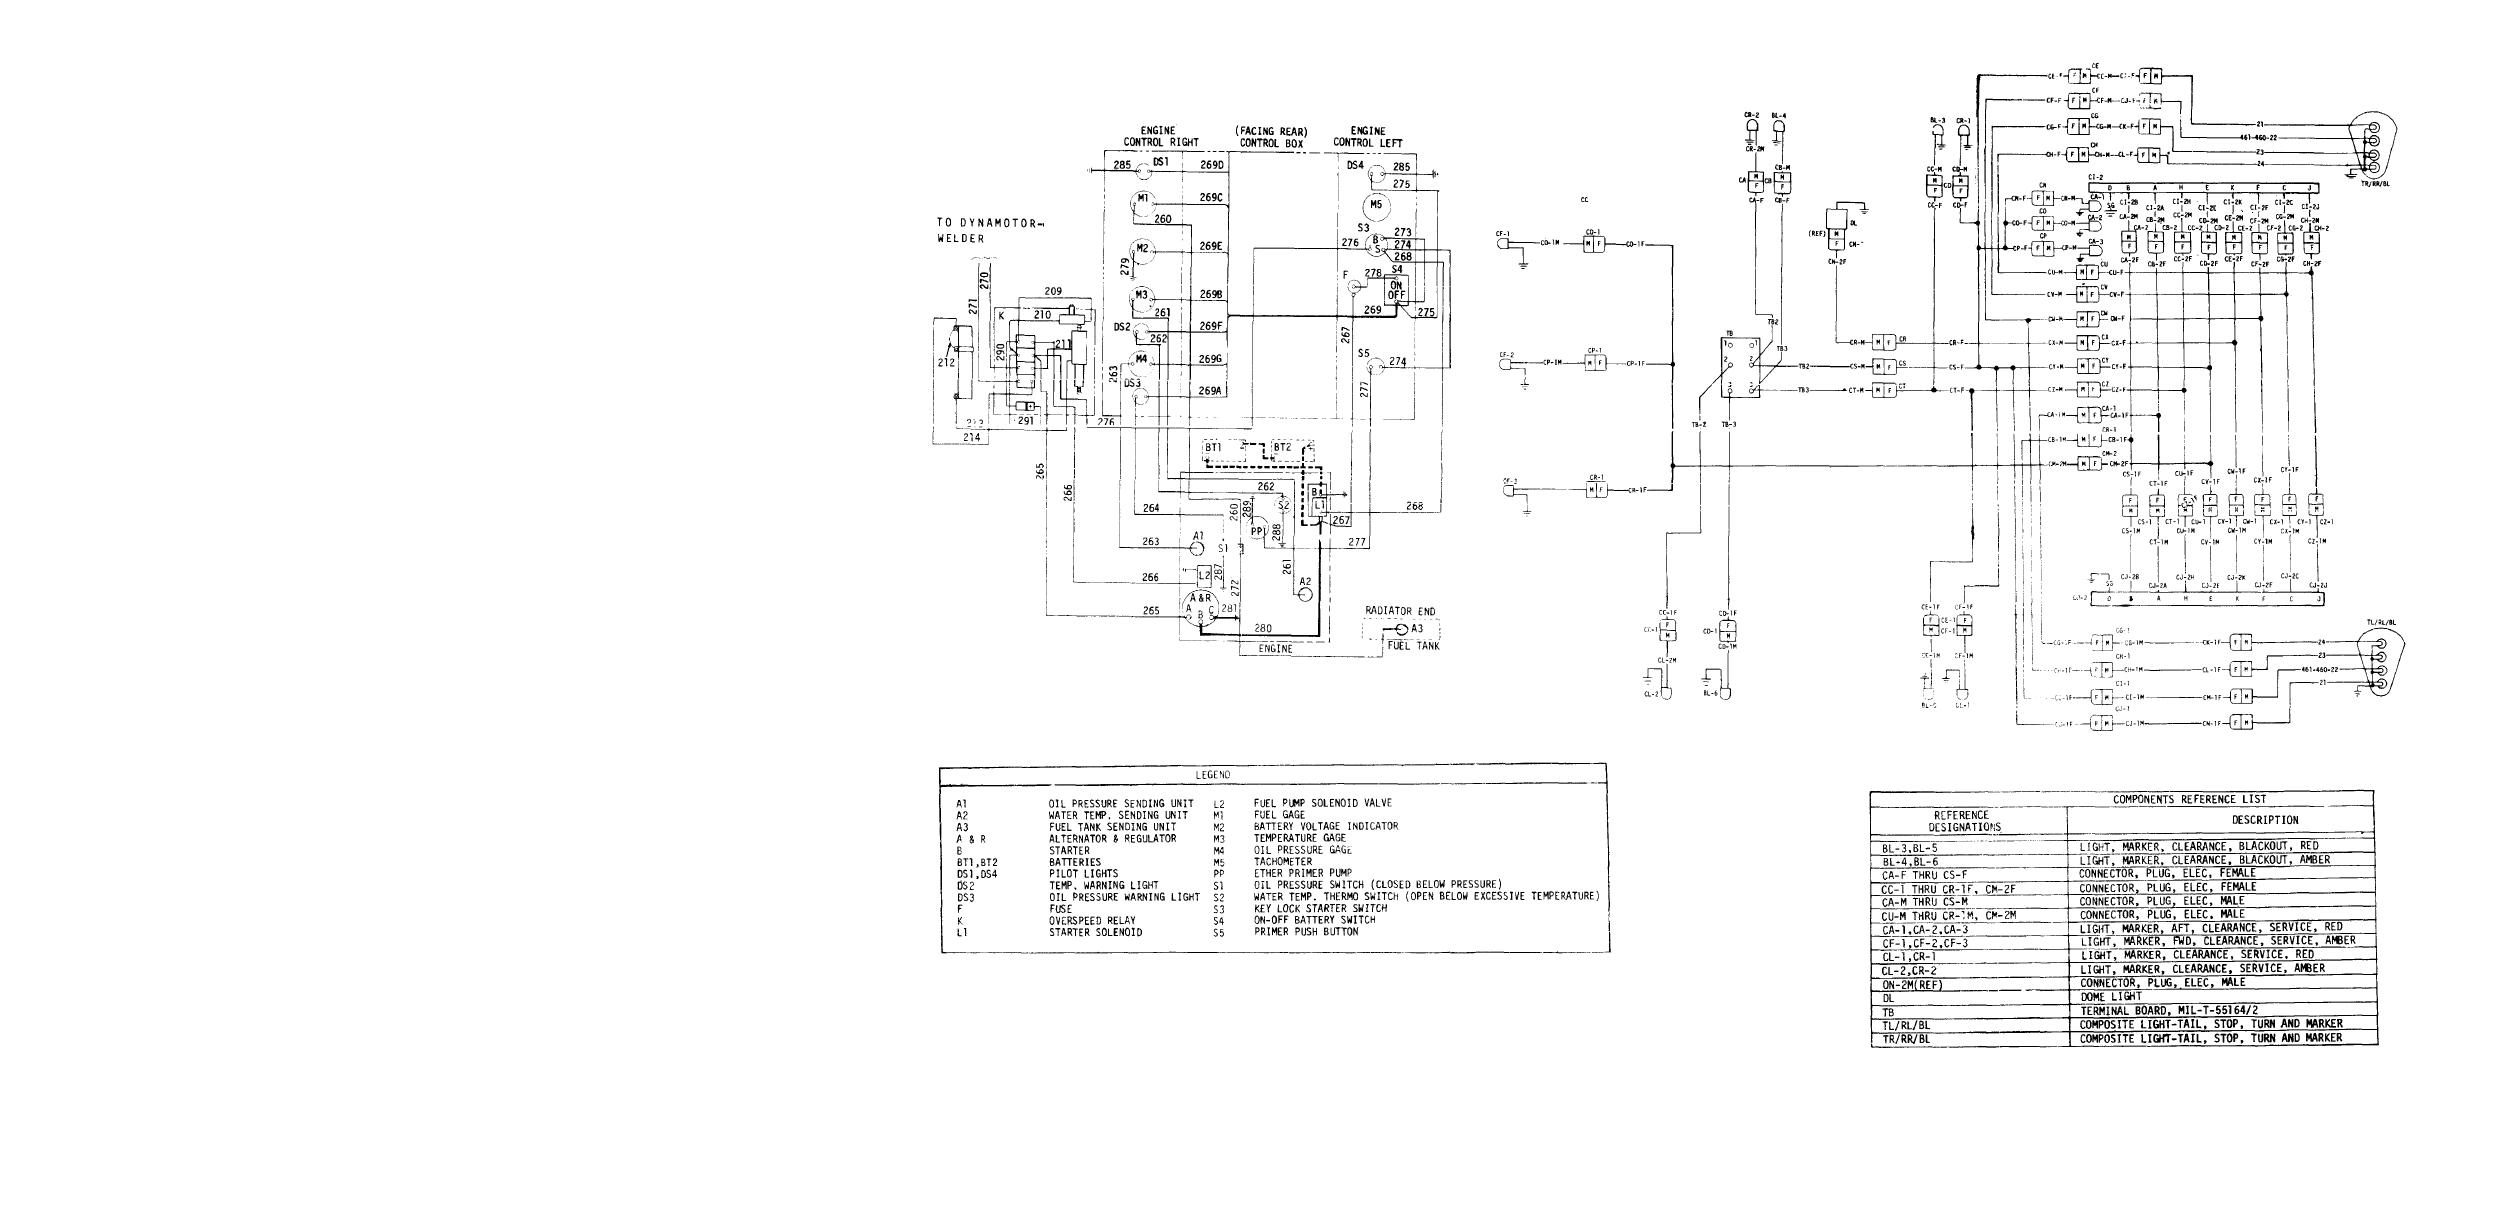 wiring diagram for a shop vac model 16lt550a wiring